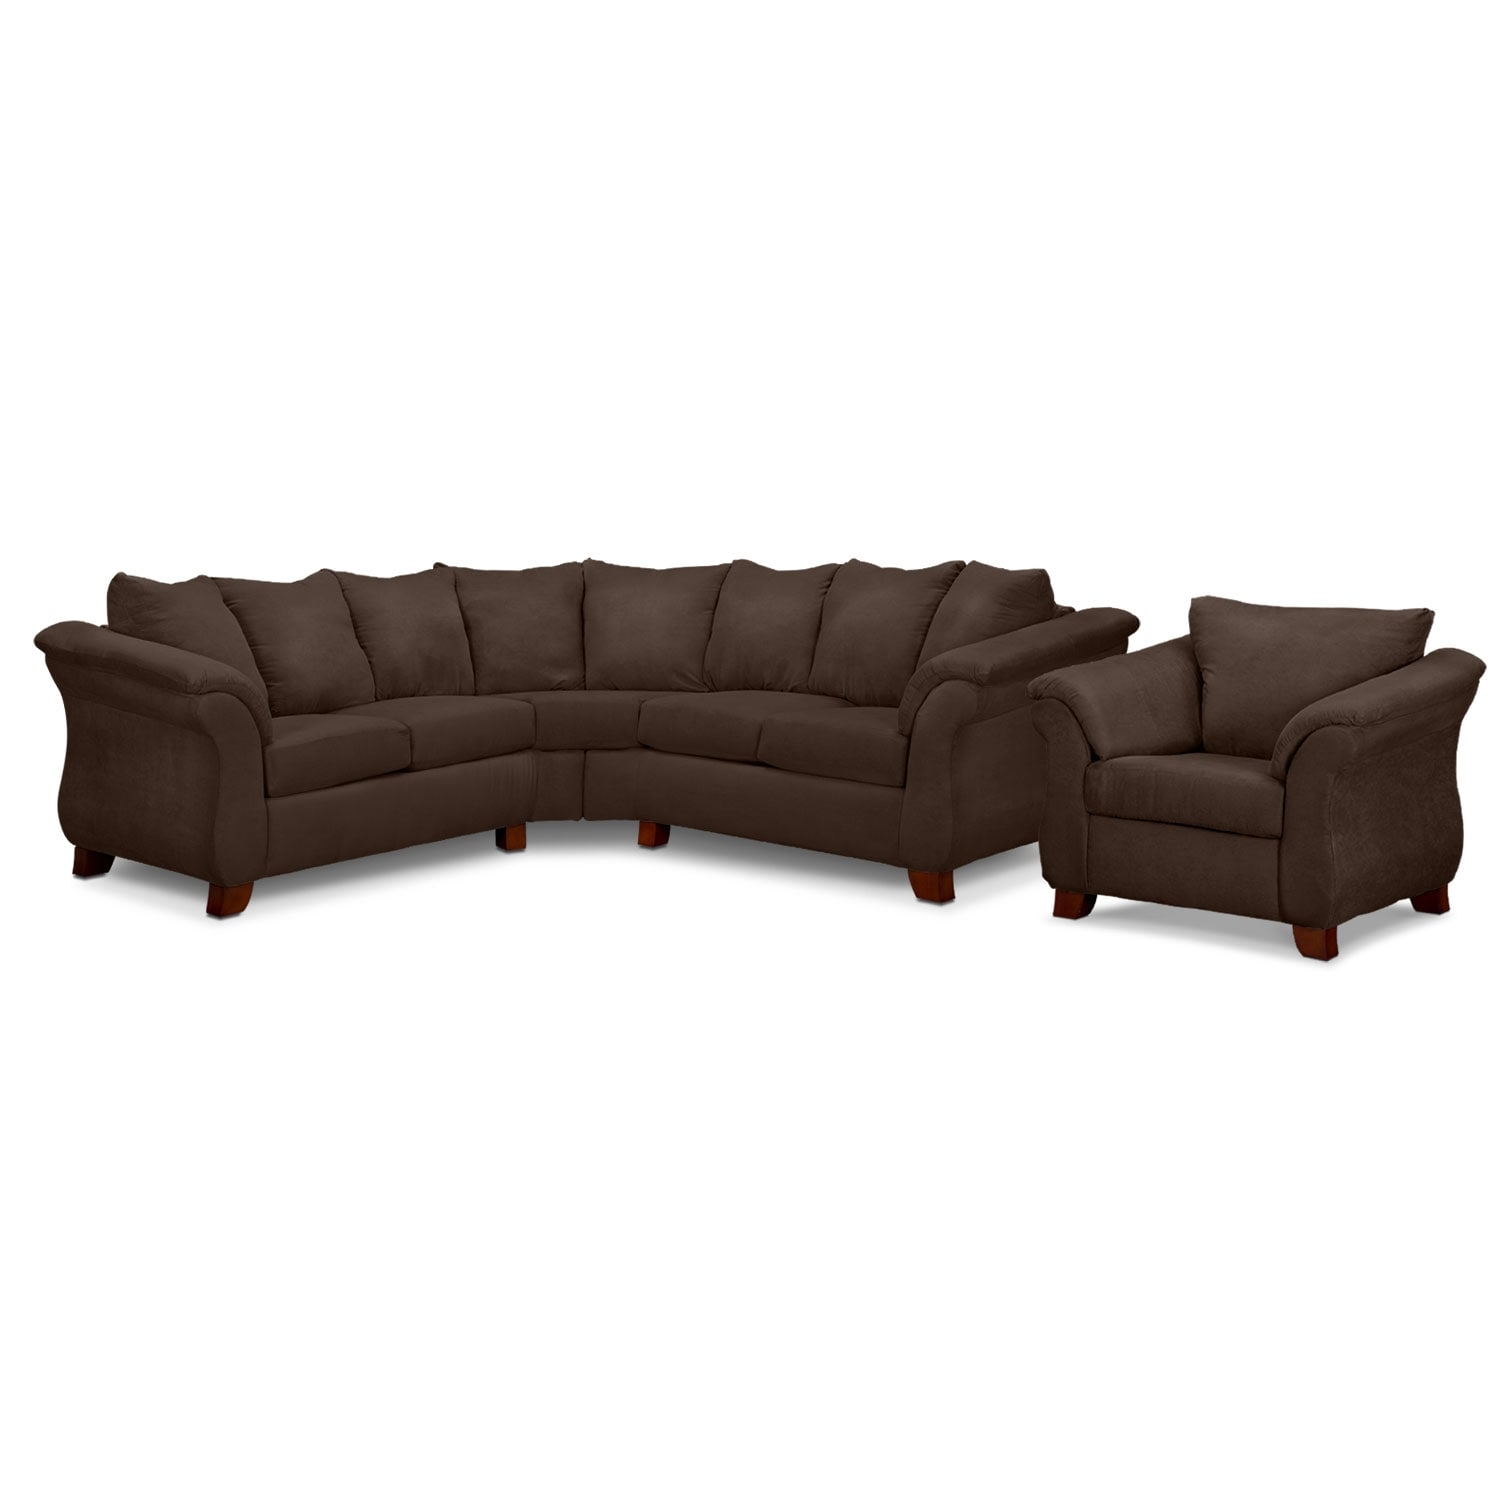 Adrian 2-Piece Sectional and Chair Set - Chocolate